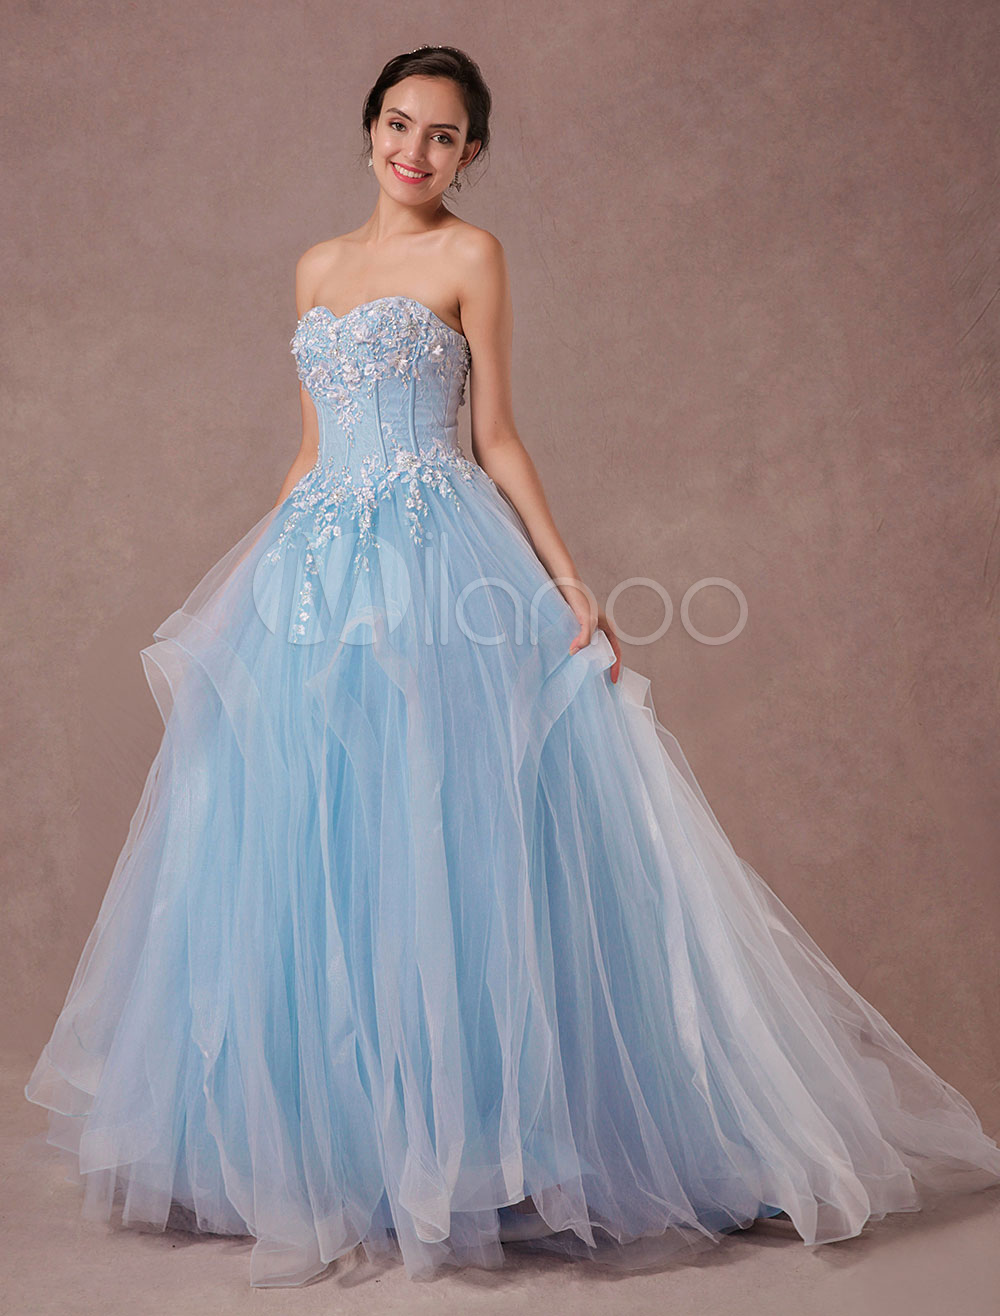 d60e32a8d934f ... Lace Beading Tulle Bridal Gown Chapel Train Sweetheart Strapless  Quinceanera Dress Luxury Backless. 12. 45%OFF. Color Baby blue